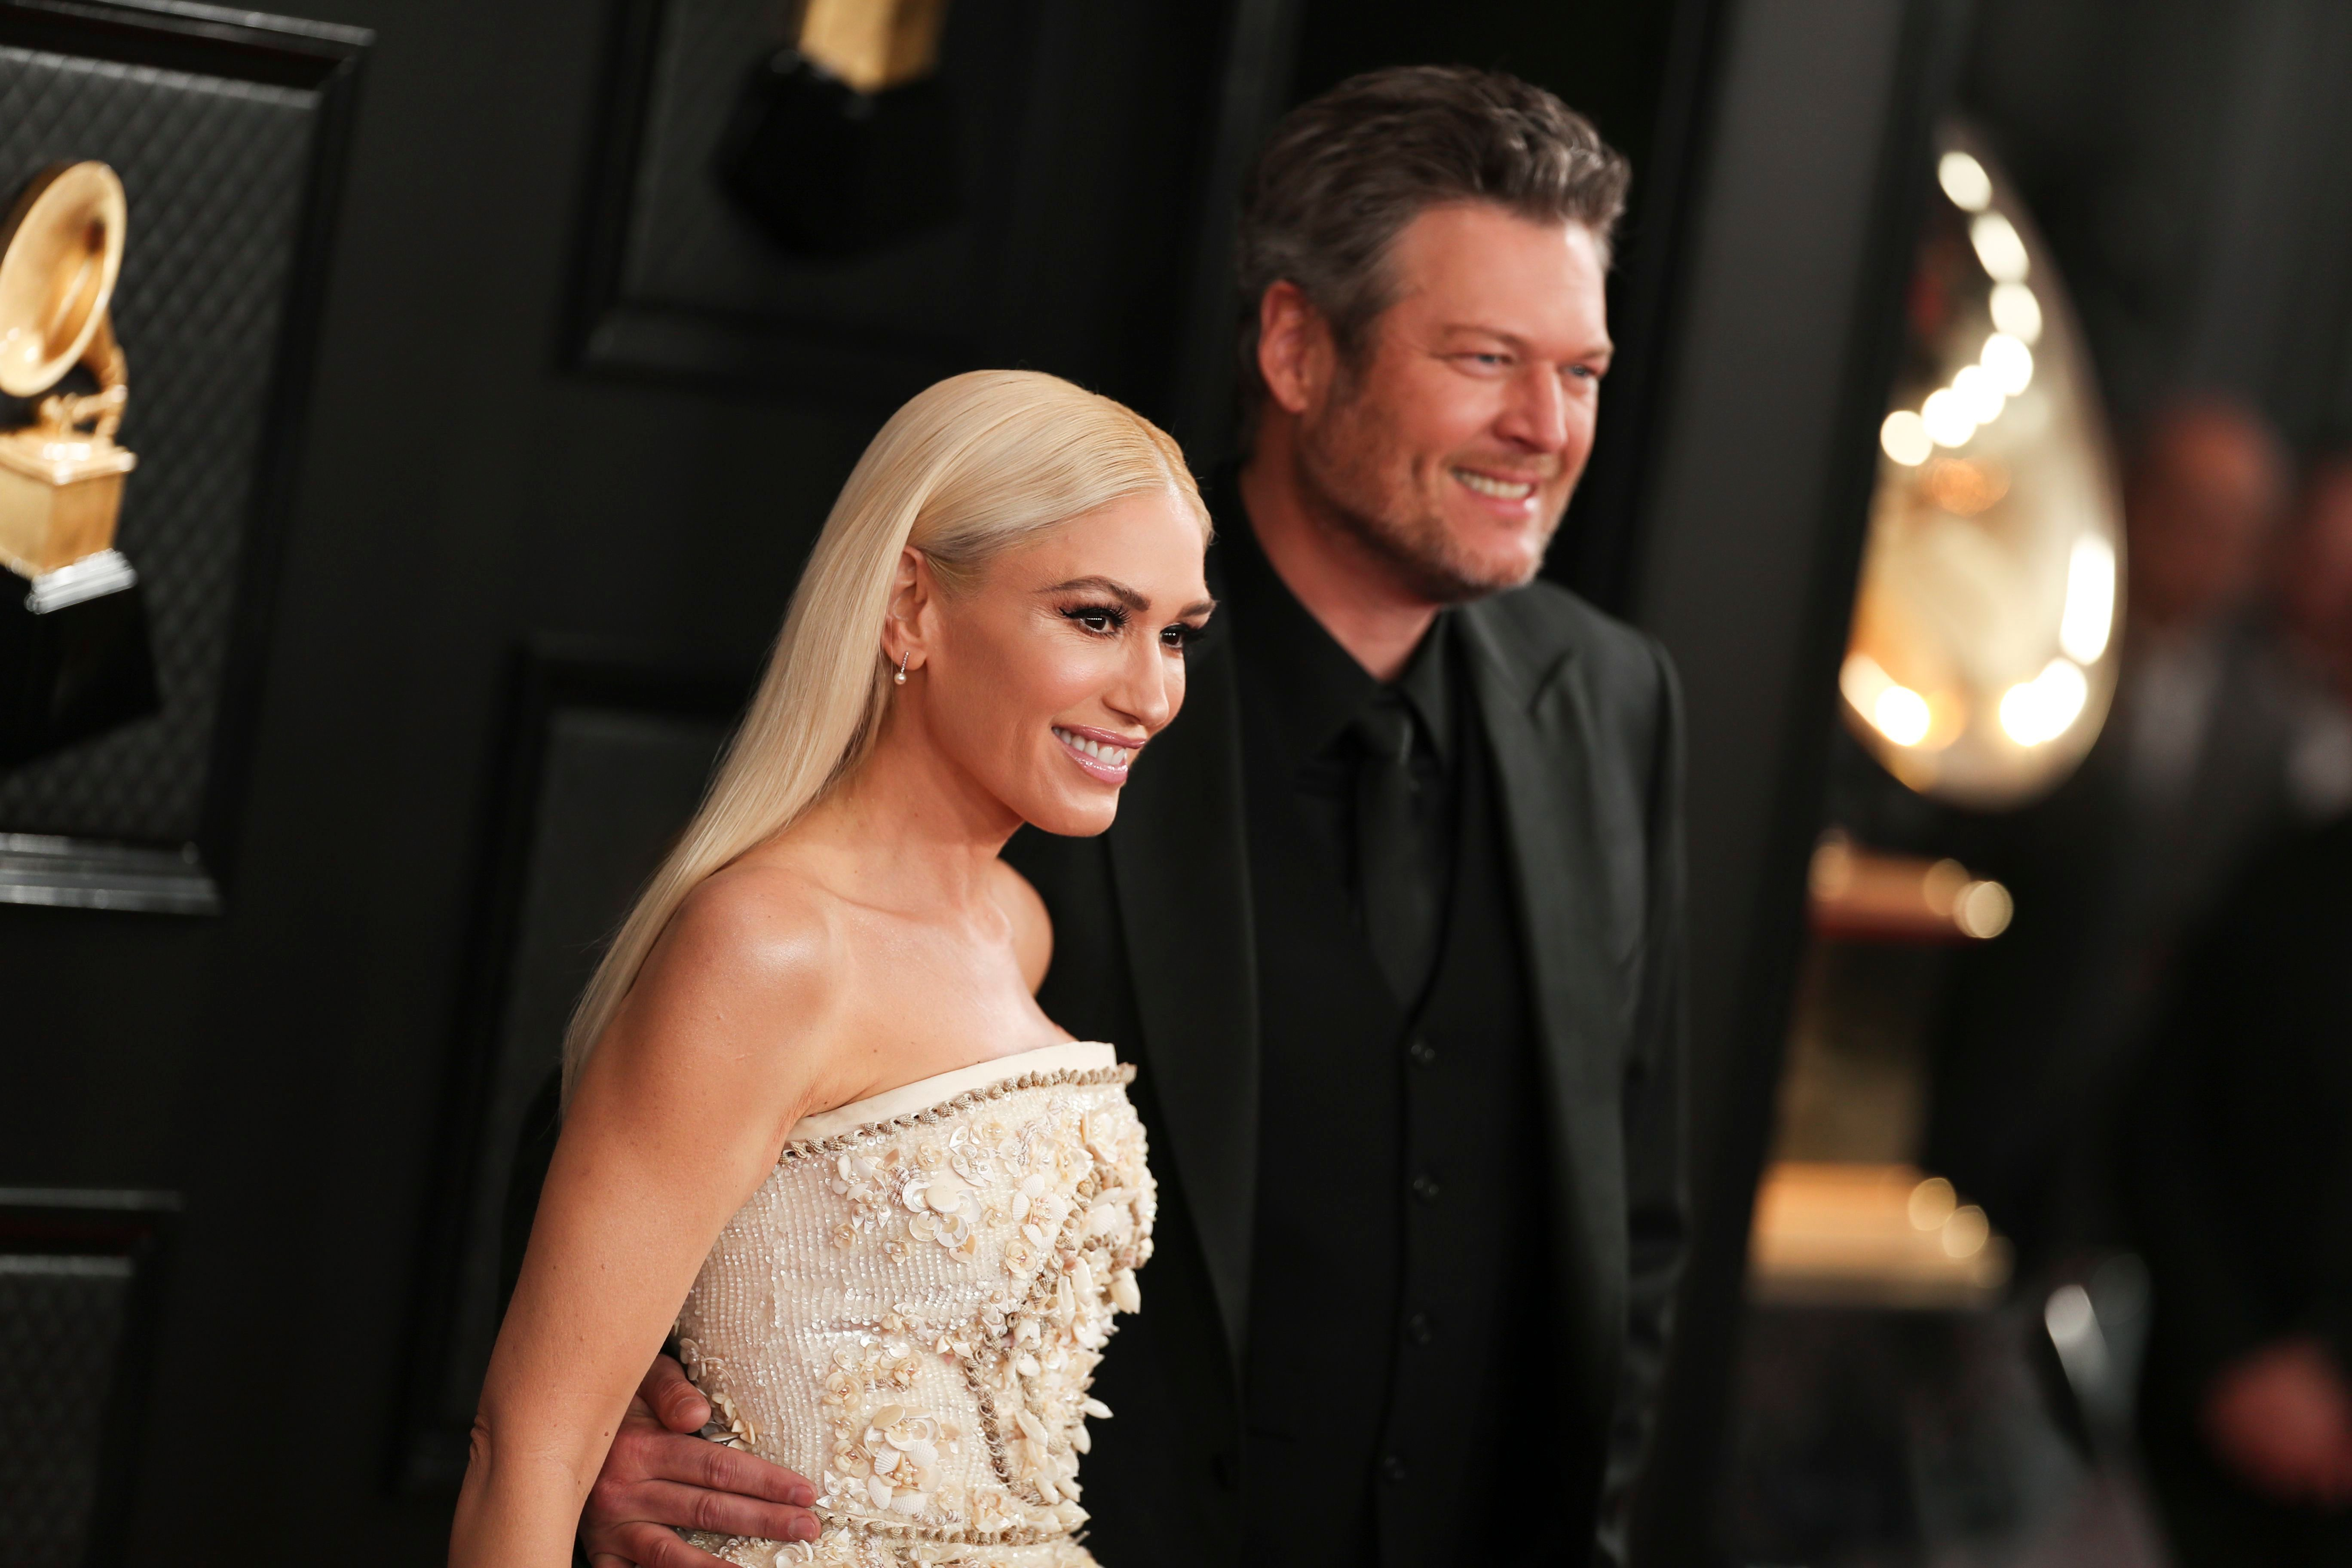 Gwen Stefani and Blake Shelton Look Like the Perfect Pair at the 2020 Grammys